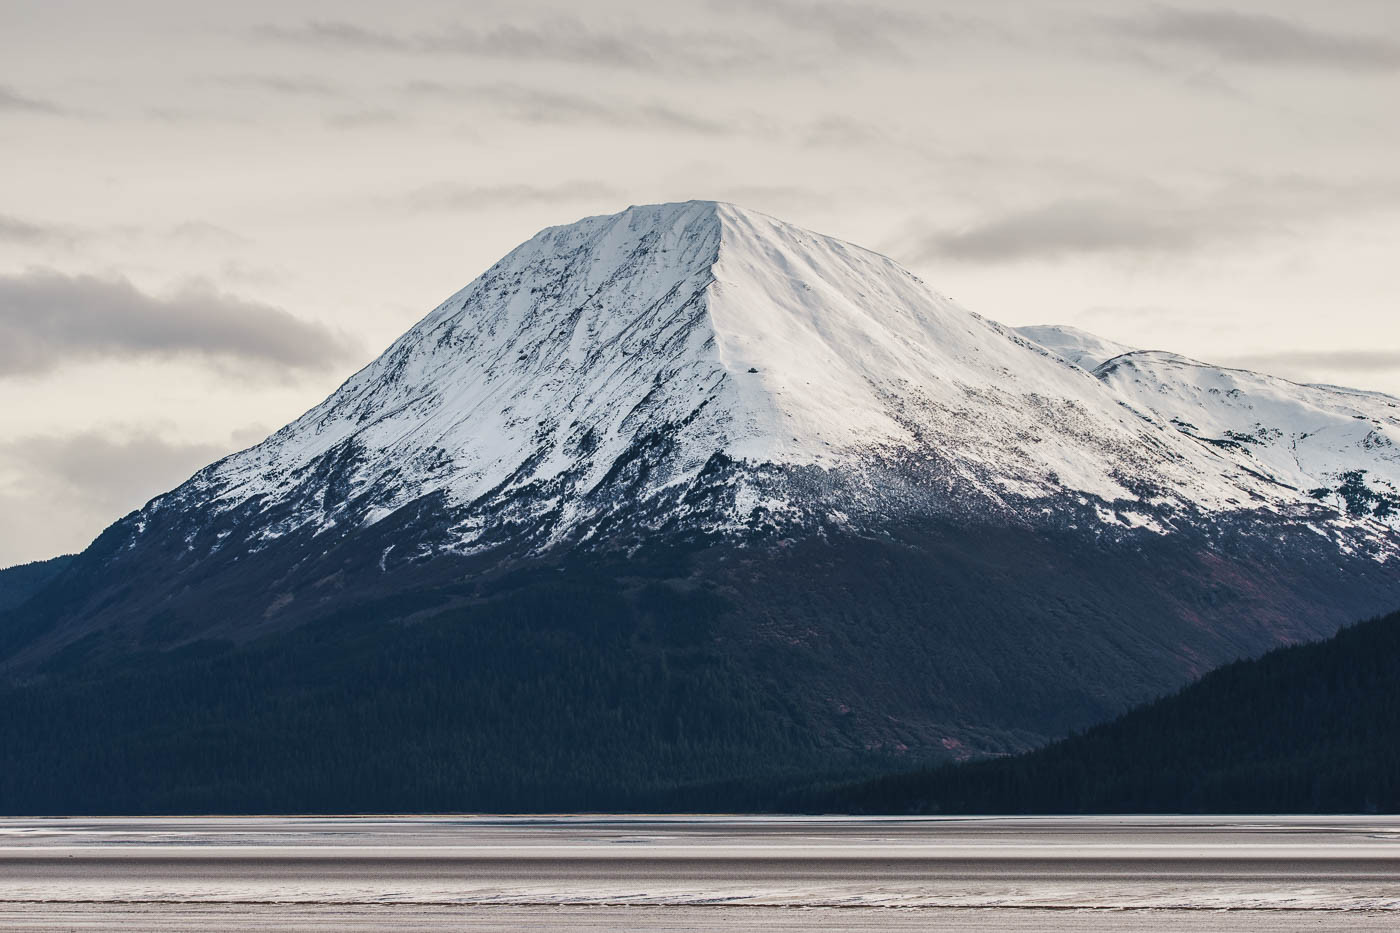 Snow-capped mountain in Alaska with the Tamron 150-600mm f/5-6.3